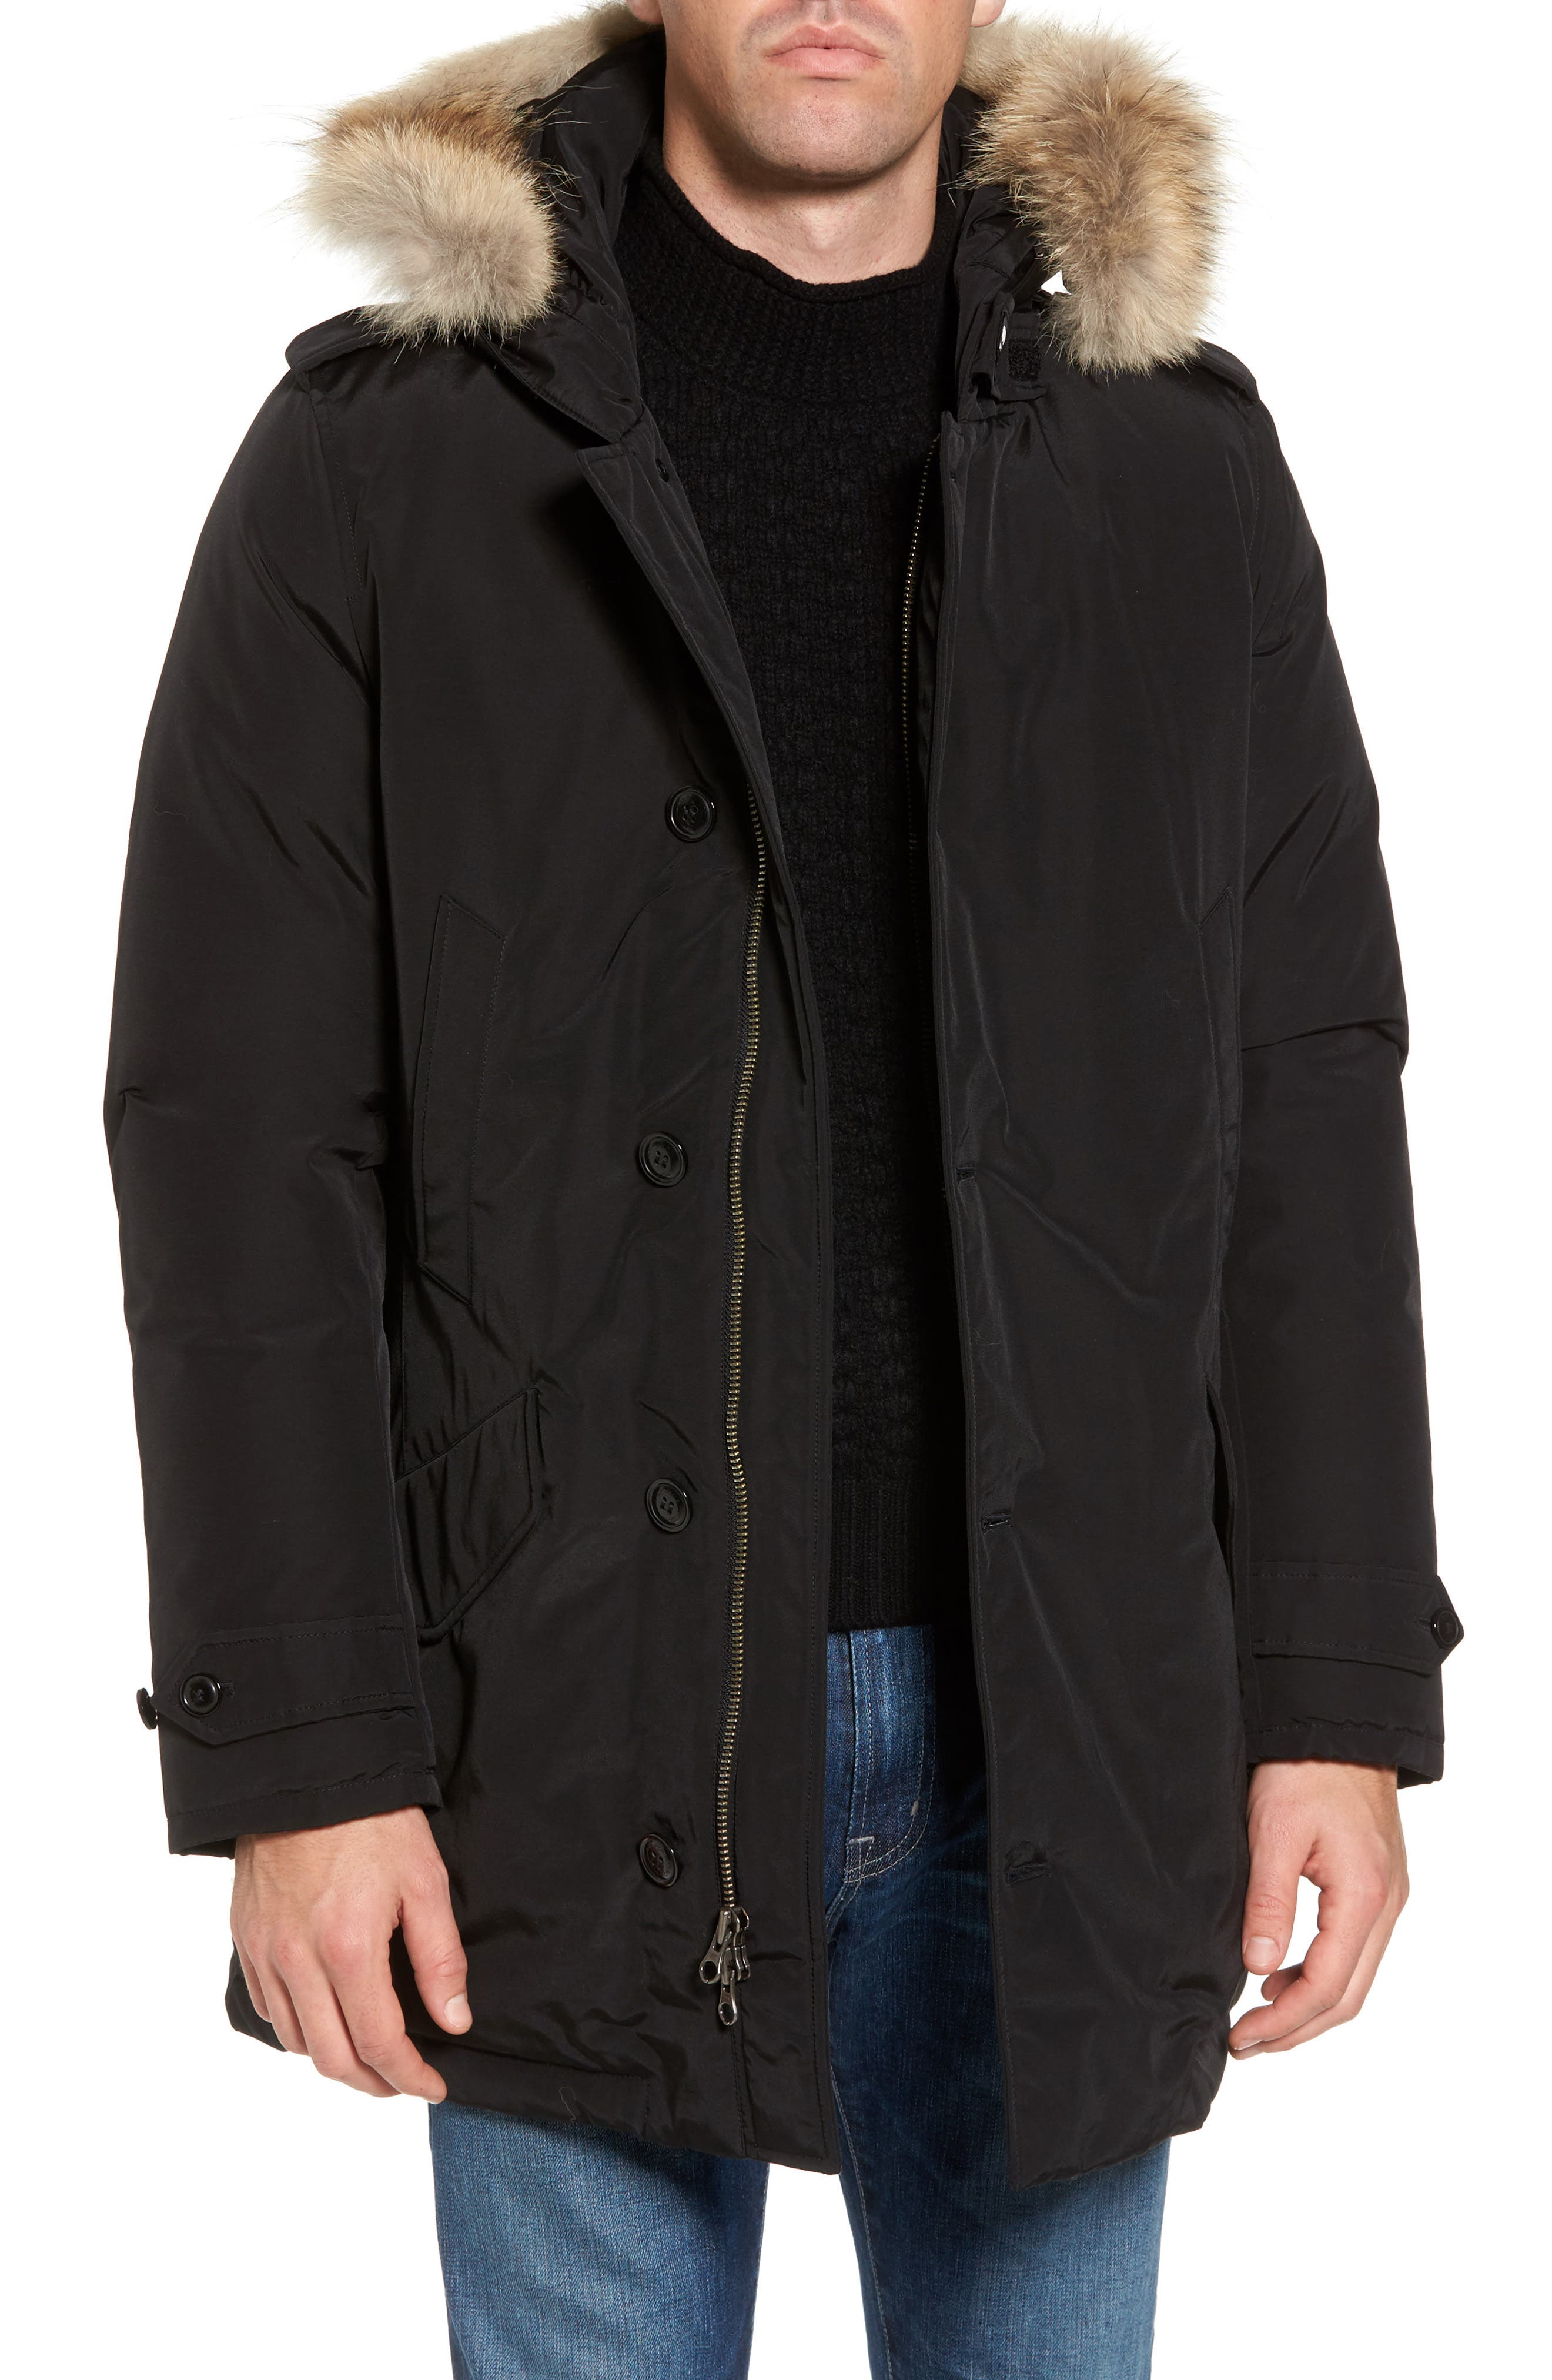 Alternate Image 1 Selected - Woolrich John Rich & Bros. Polar Down Parka with Genuine Coyote Fur Trim